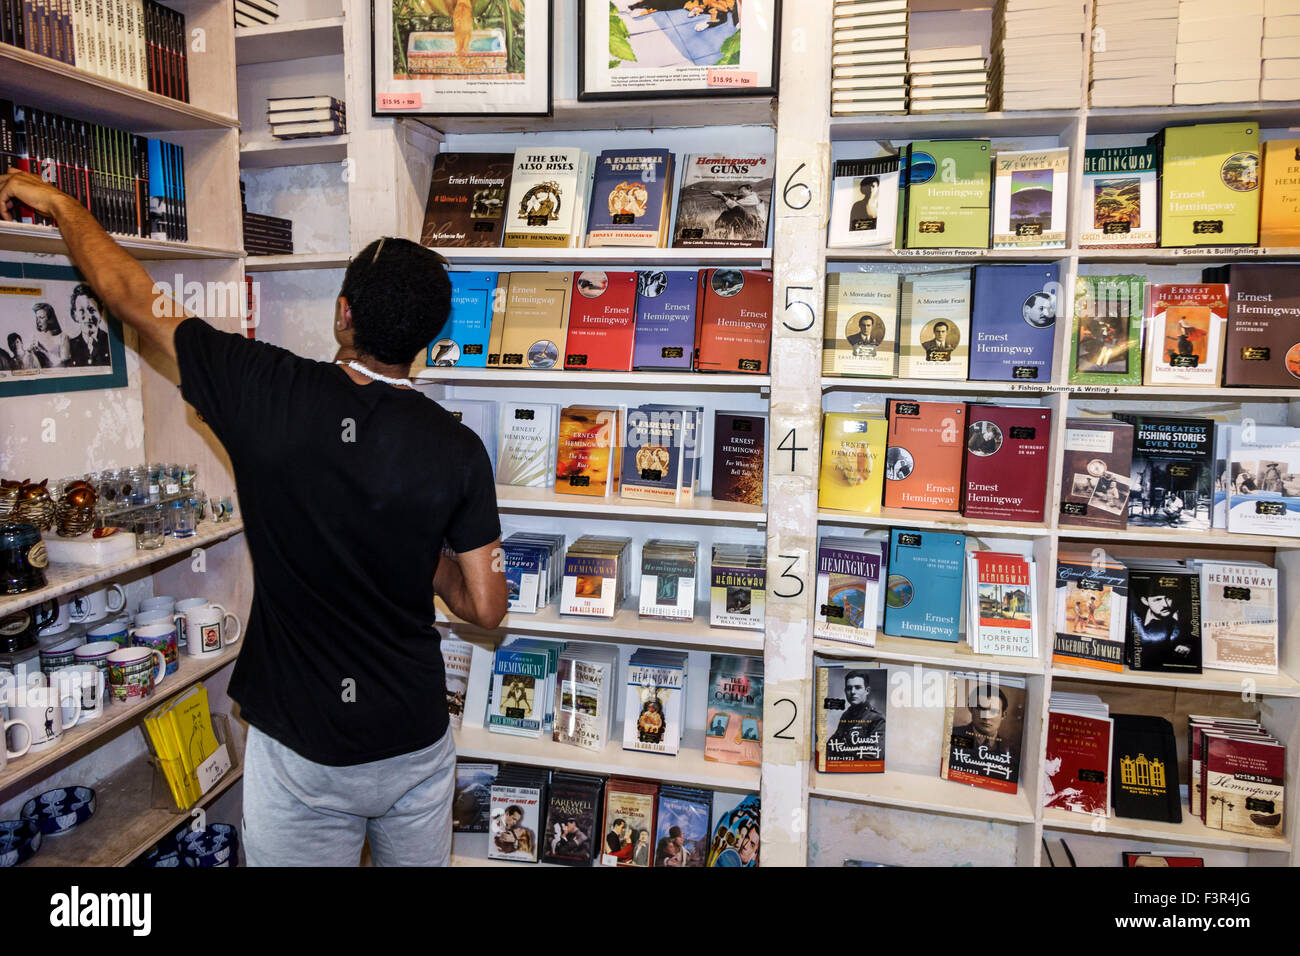 Florida Key West Keys Whitehead Street The Ernest Hemingway Home and Museum gift store shopping books man Stock Photo